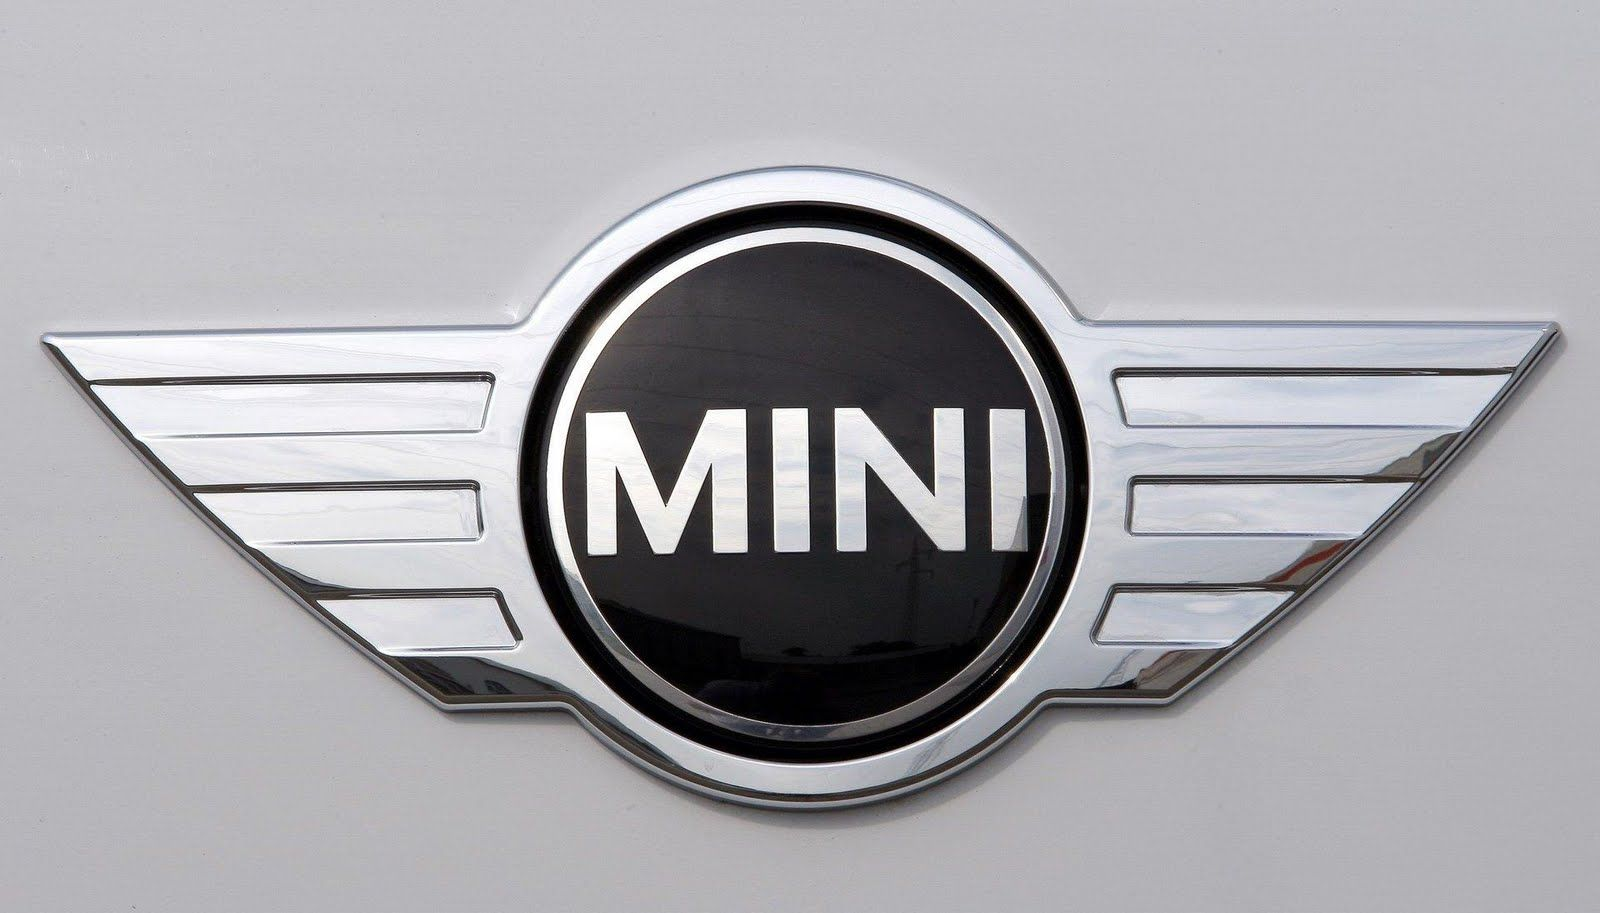 Black and Silver Car Logo - Mini Cooper Logo, Mini Car Symbol Meaning and History | Car Brand ...